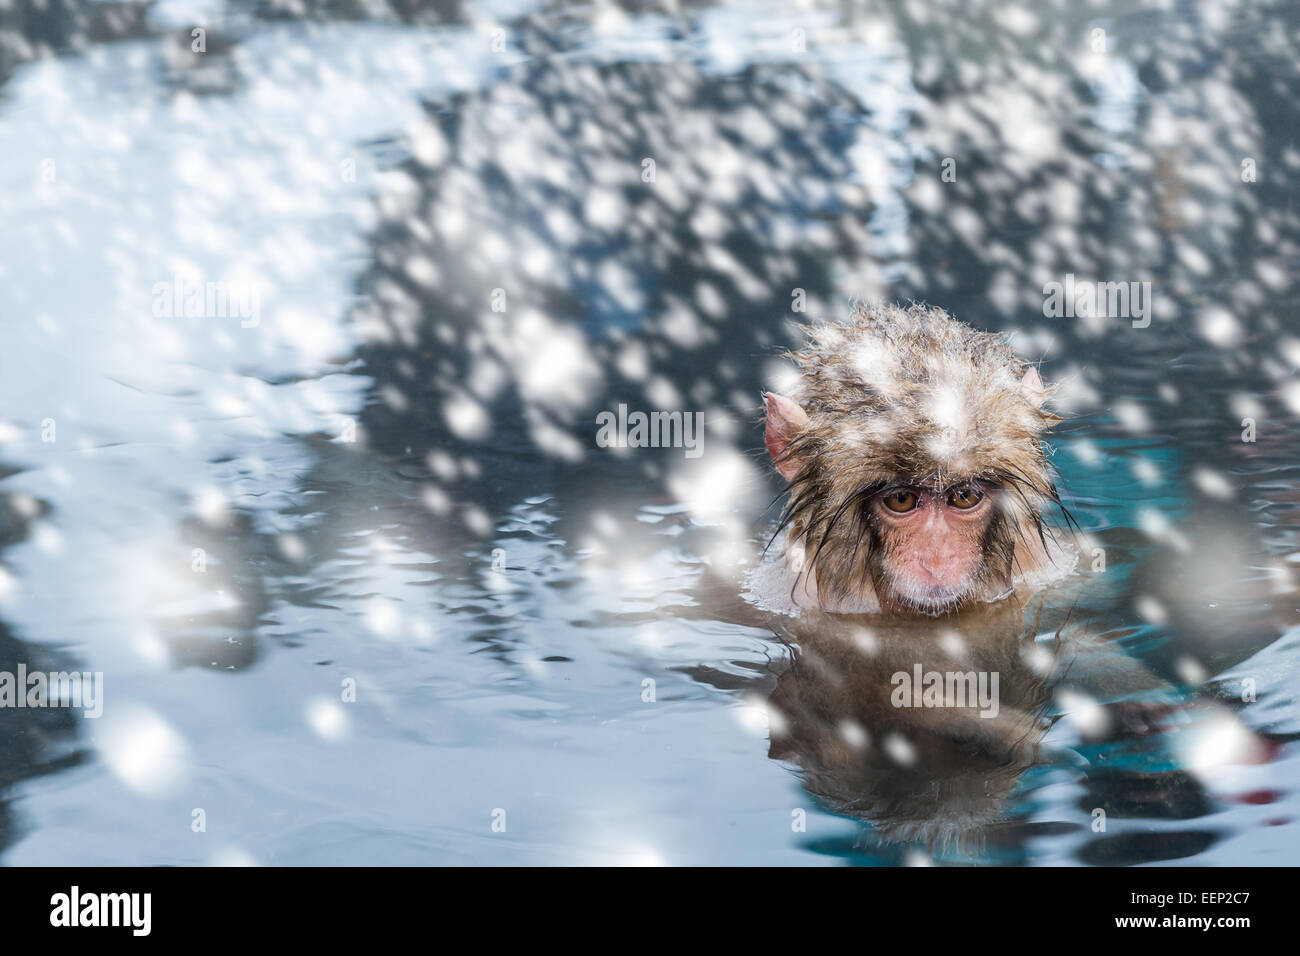 A baby snow monkey soaks in the onsen at the Jigokudani monkey park in Nagano Prefecture, Japan. Stock Photo